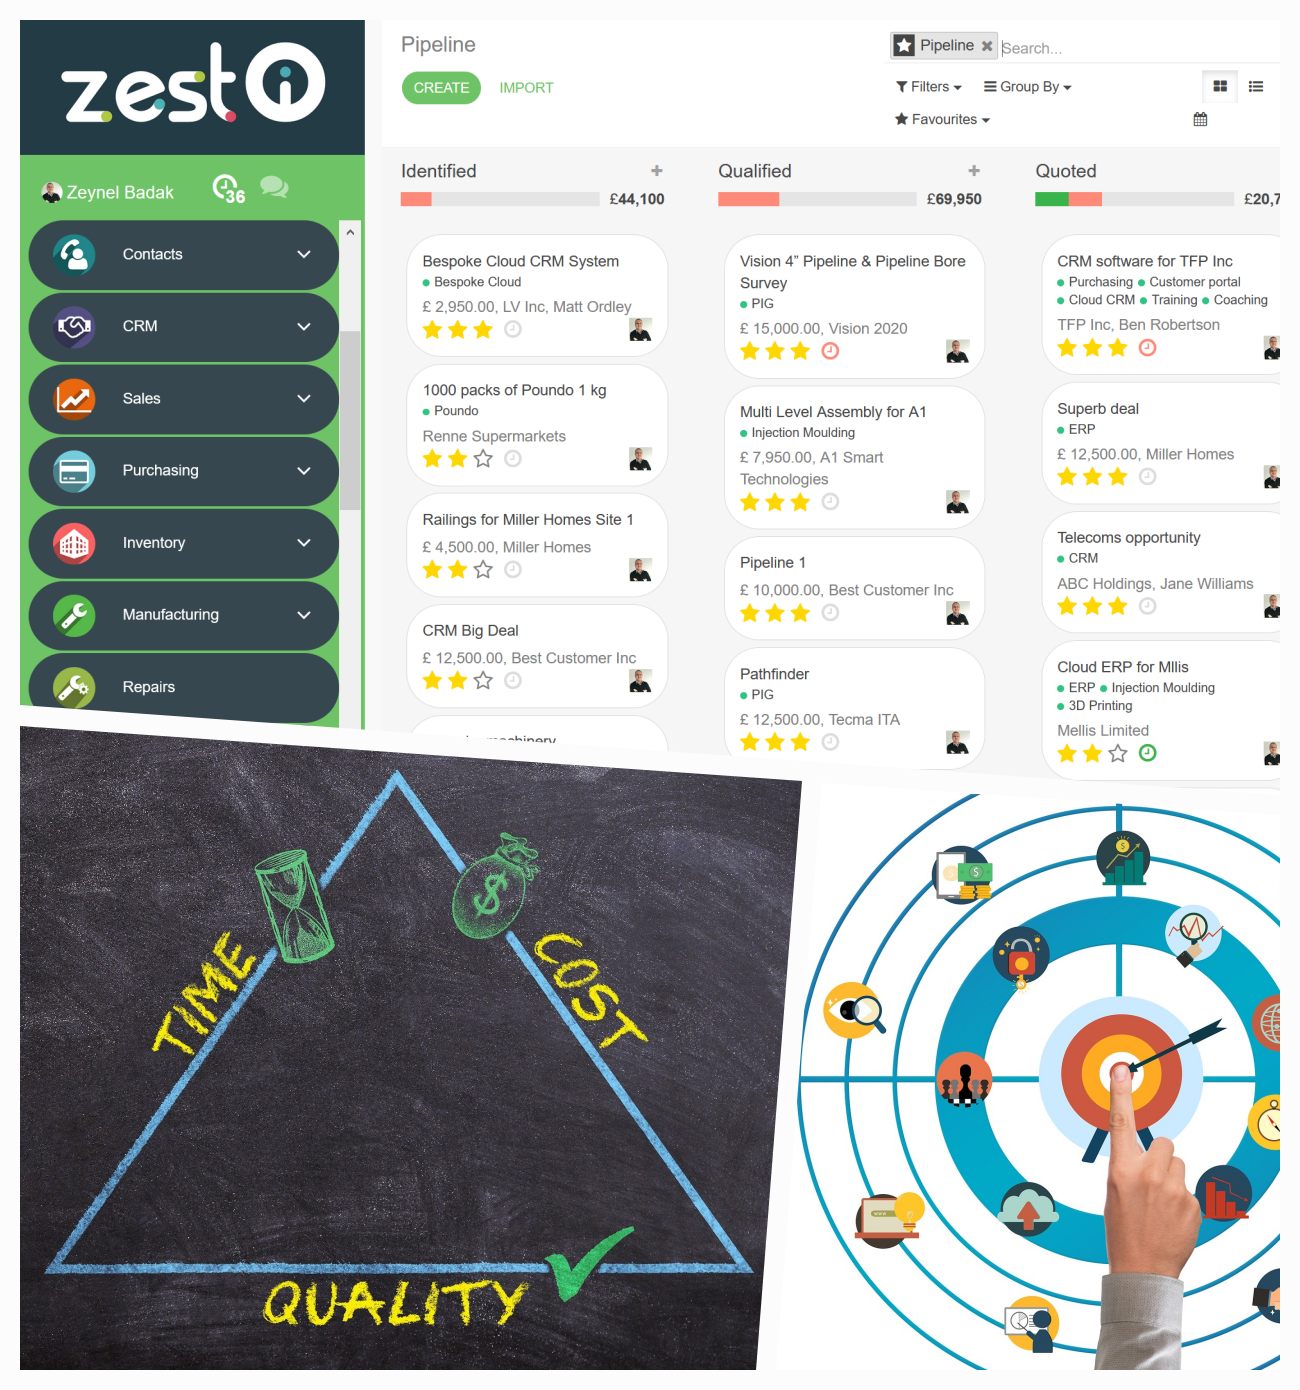 ZEST I-O Improving productivity providing visibility